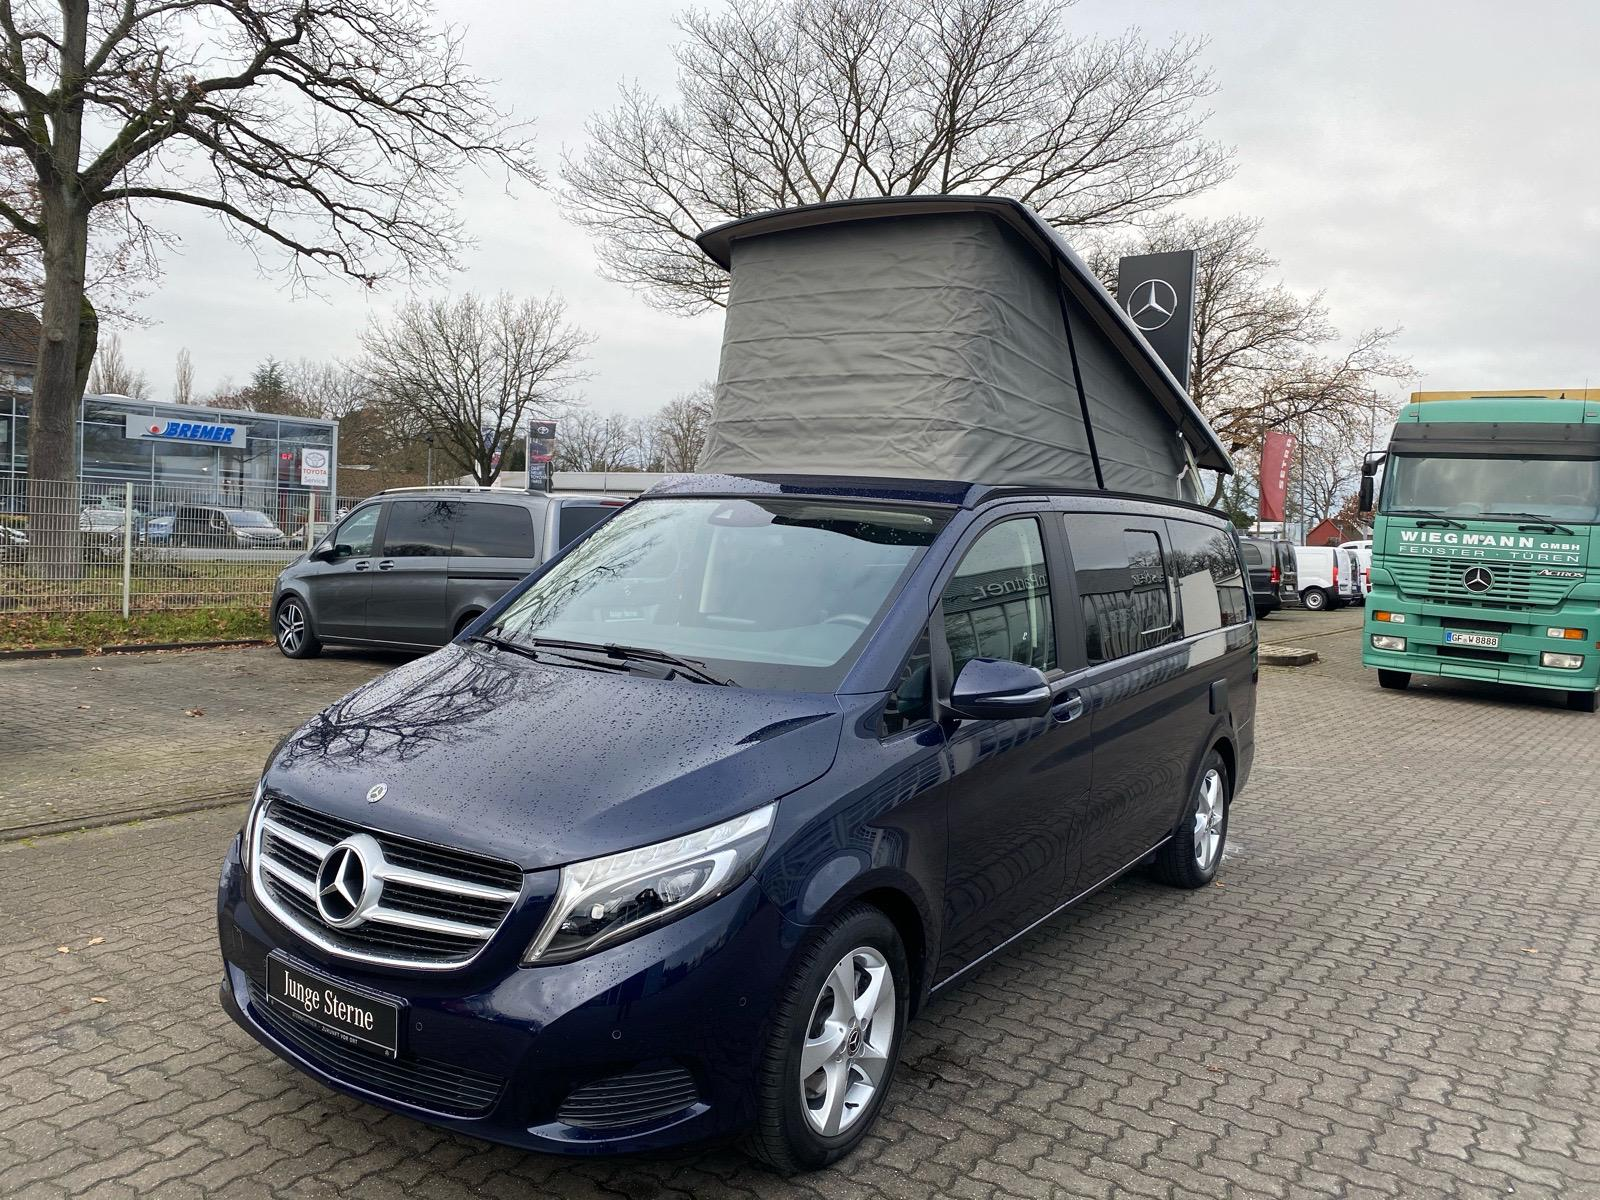 Mercedes V220d Marco Polo - Wohnmobil in Berlin